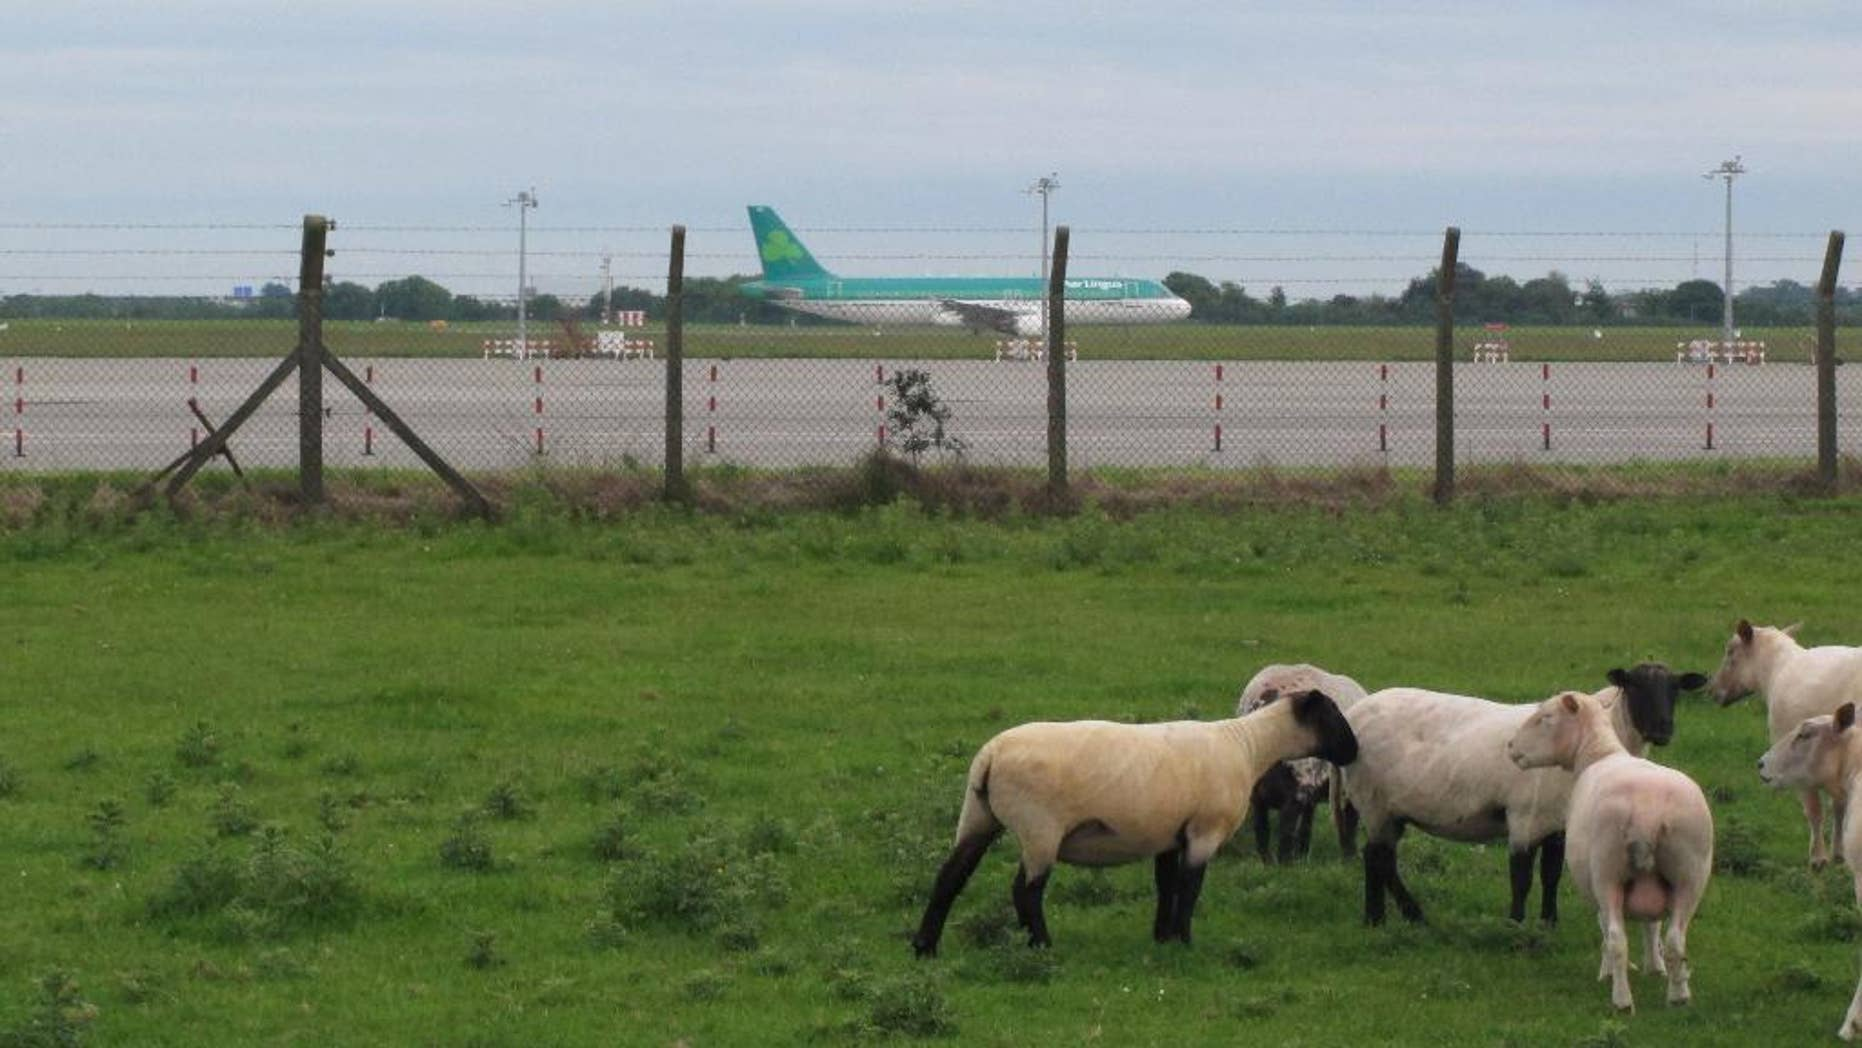 FILE - A Wednesday, June 20, 2012 file photo showing a flock of sheep paying no heed as two Aer Lingus jets taxi and take off at Dublin Airport, Ireland. The Dublin-based carrier has rejected a takeover bid by IAG, the parent company of British Airways and Spain's Iberia. Aer Lingus previously has rejected three bids from its major Irish rival Ryanair, which is Aer Lingus' biggest shareholder. (AP Photo/Shawn Pogatchnik)